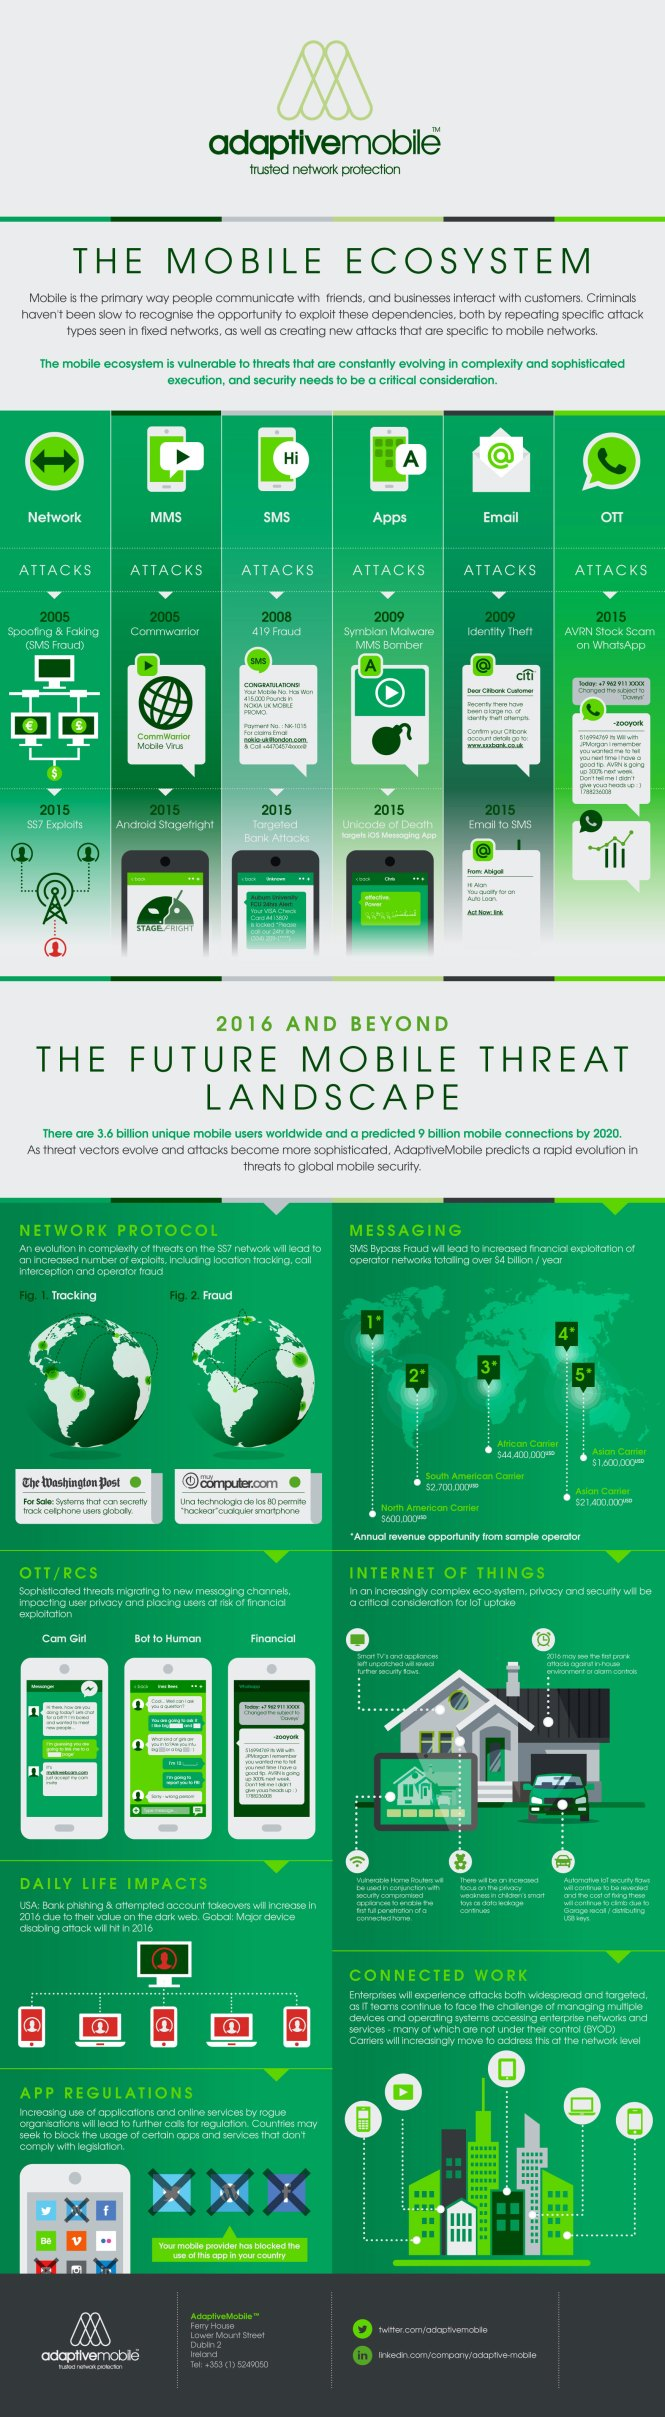 The Mobile Ecosystem